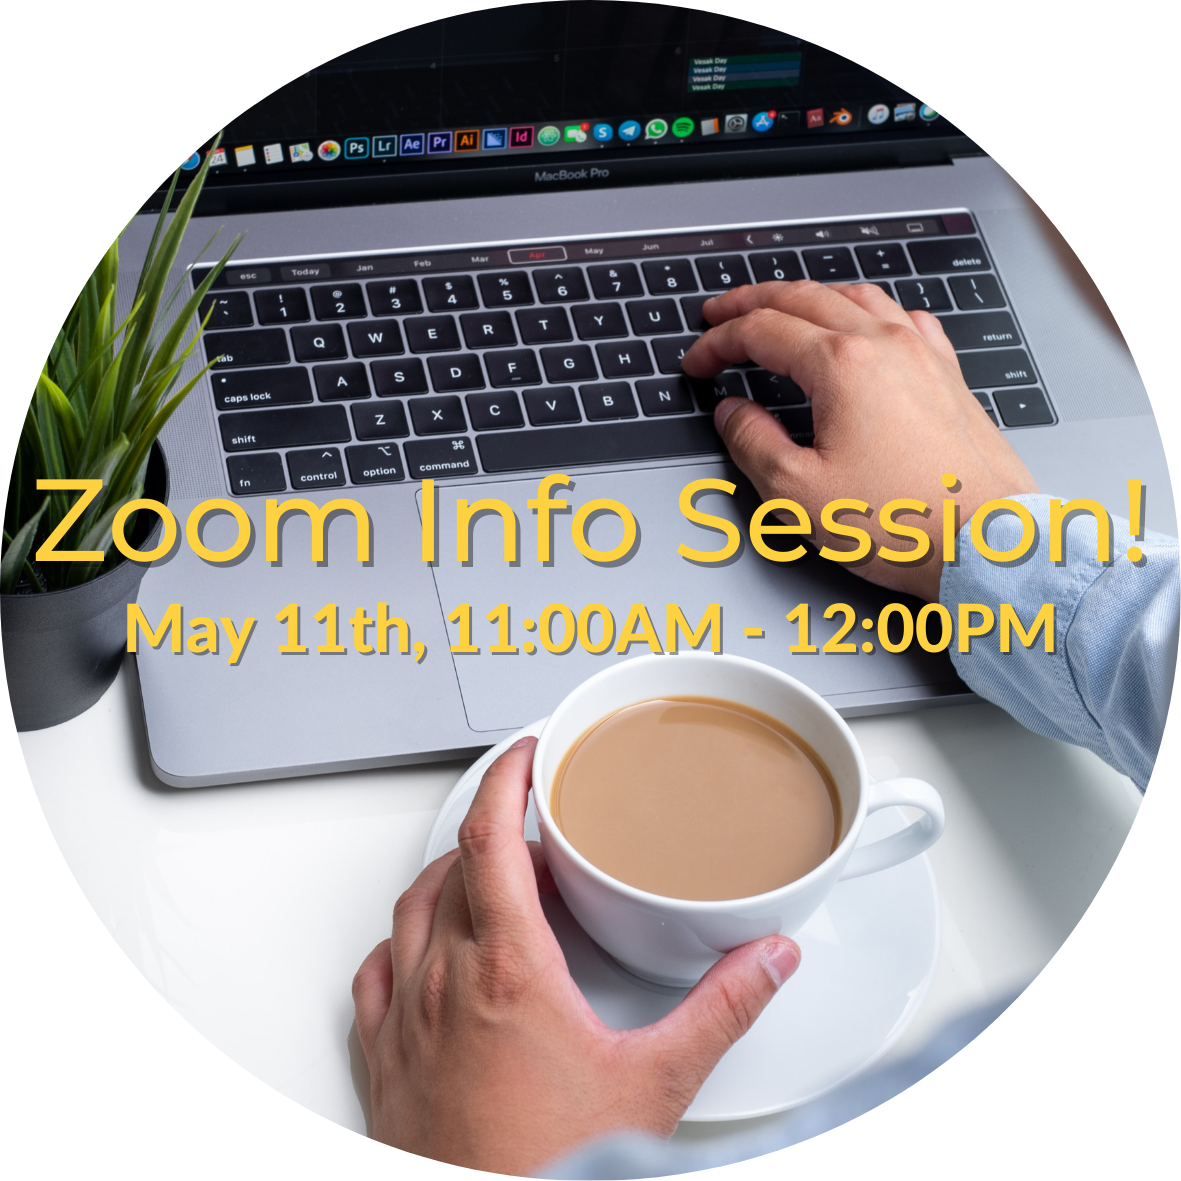 Zoom Info Session link